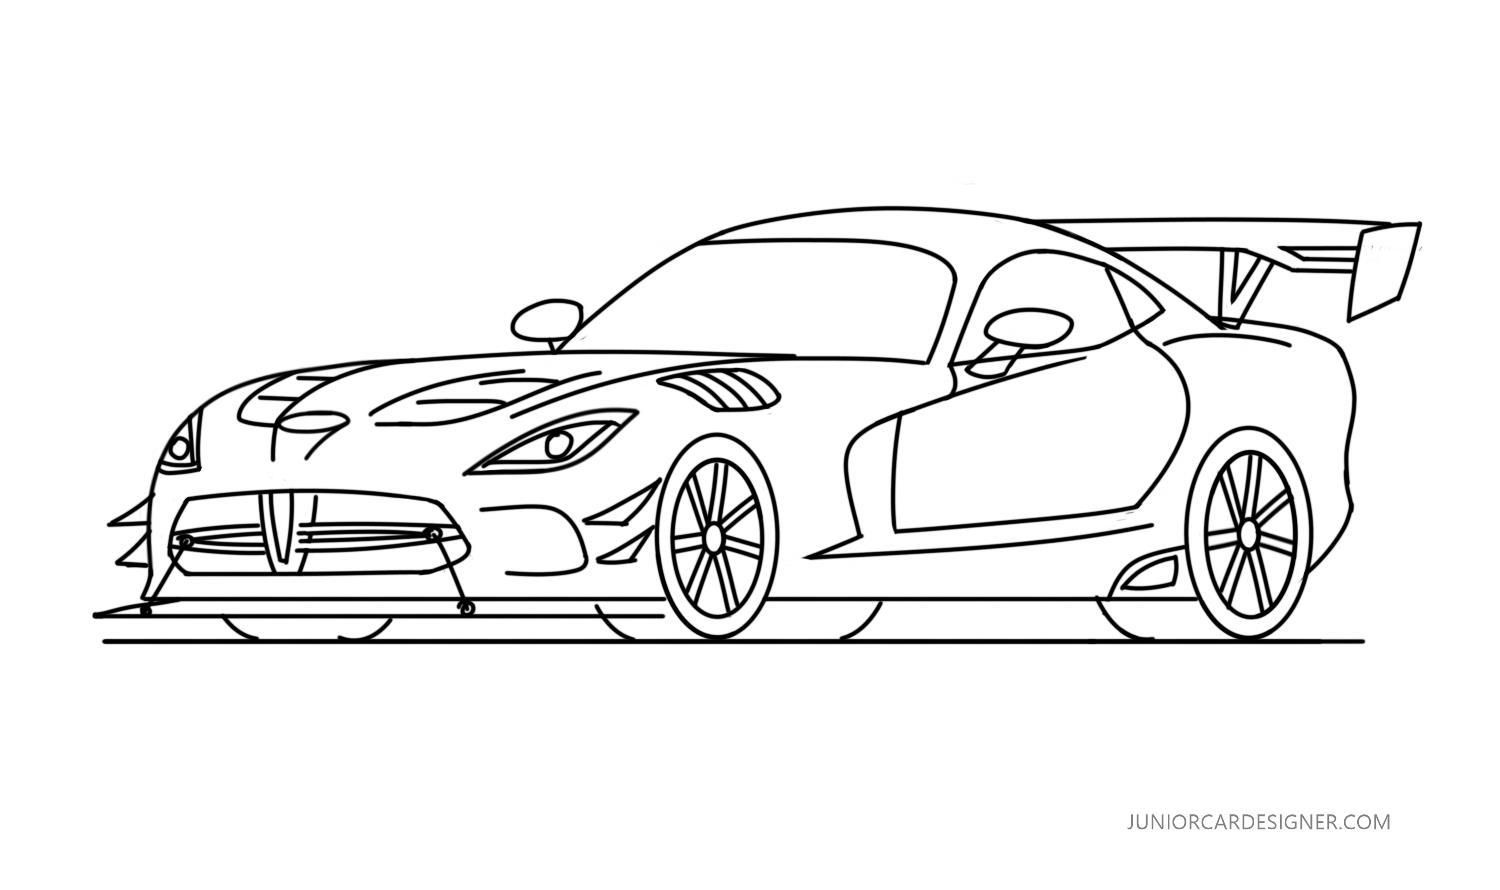 Draw A Dodge Viper Acr In